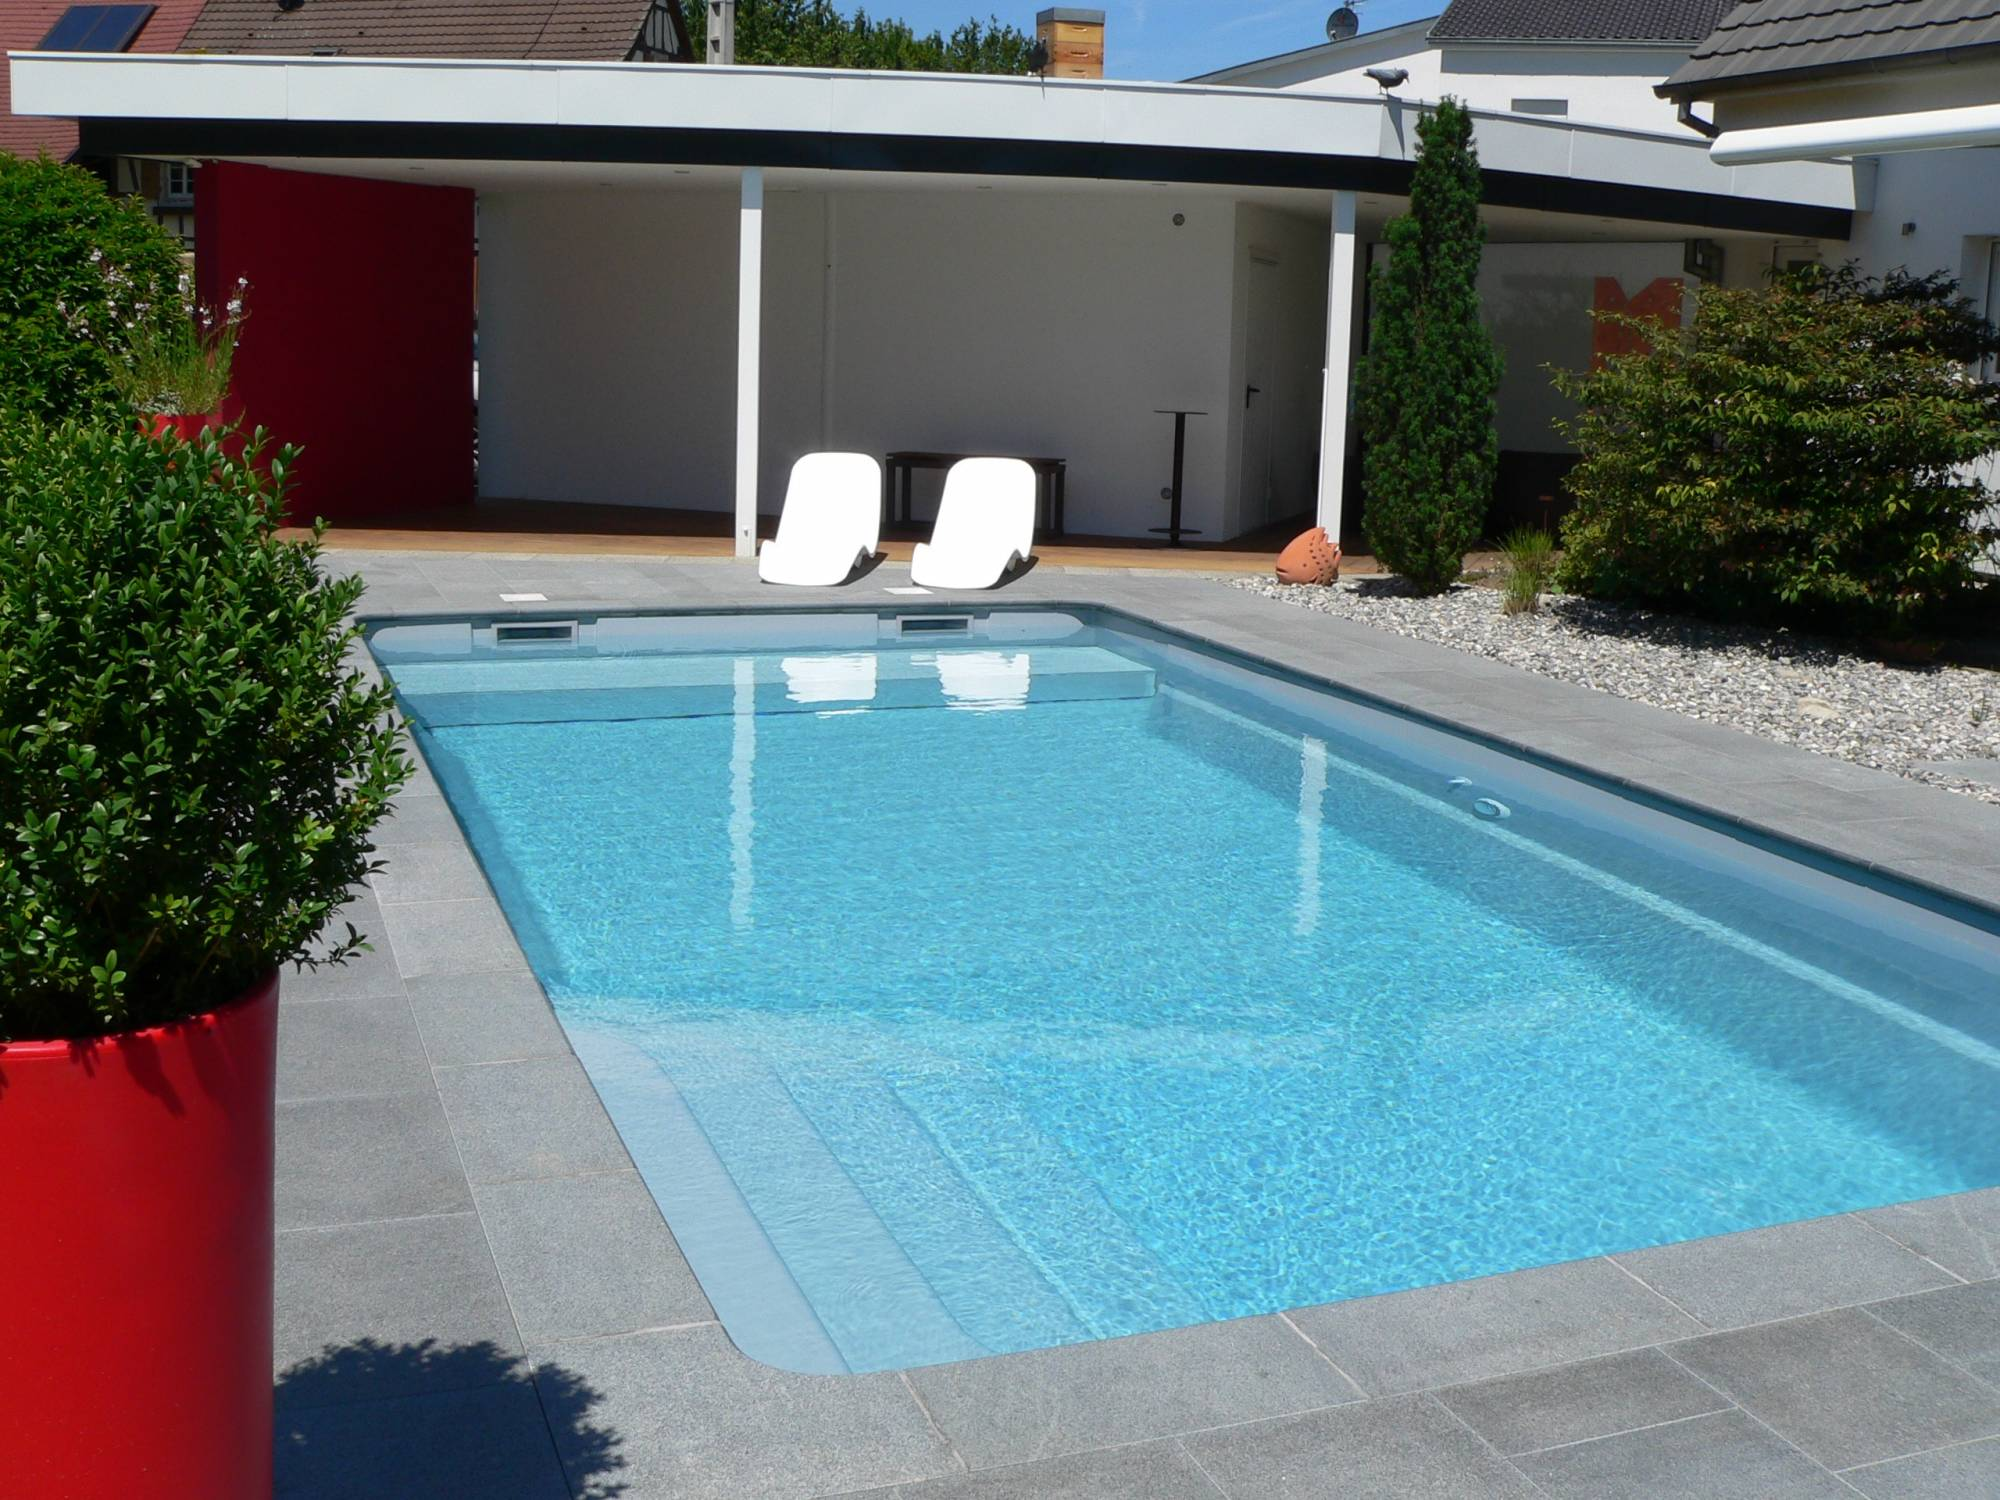 Les dispositifs de s curit homologu s pour piscines for Piscine coque volet integre